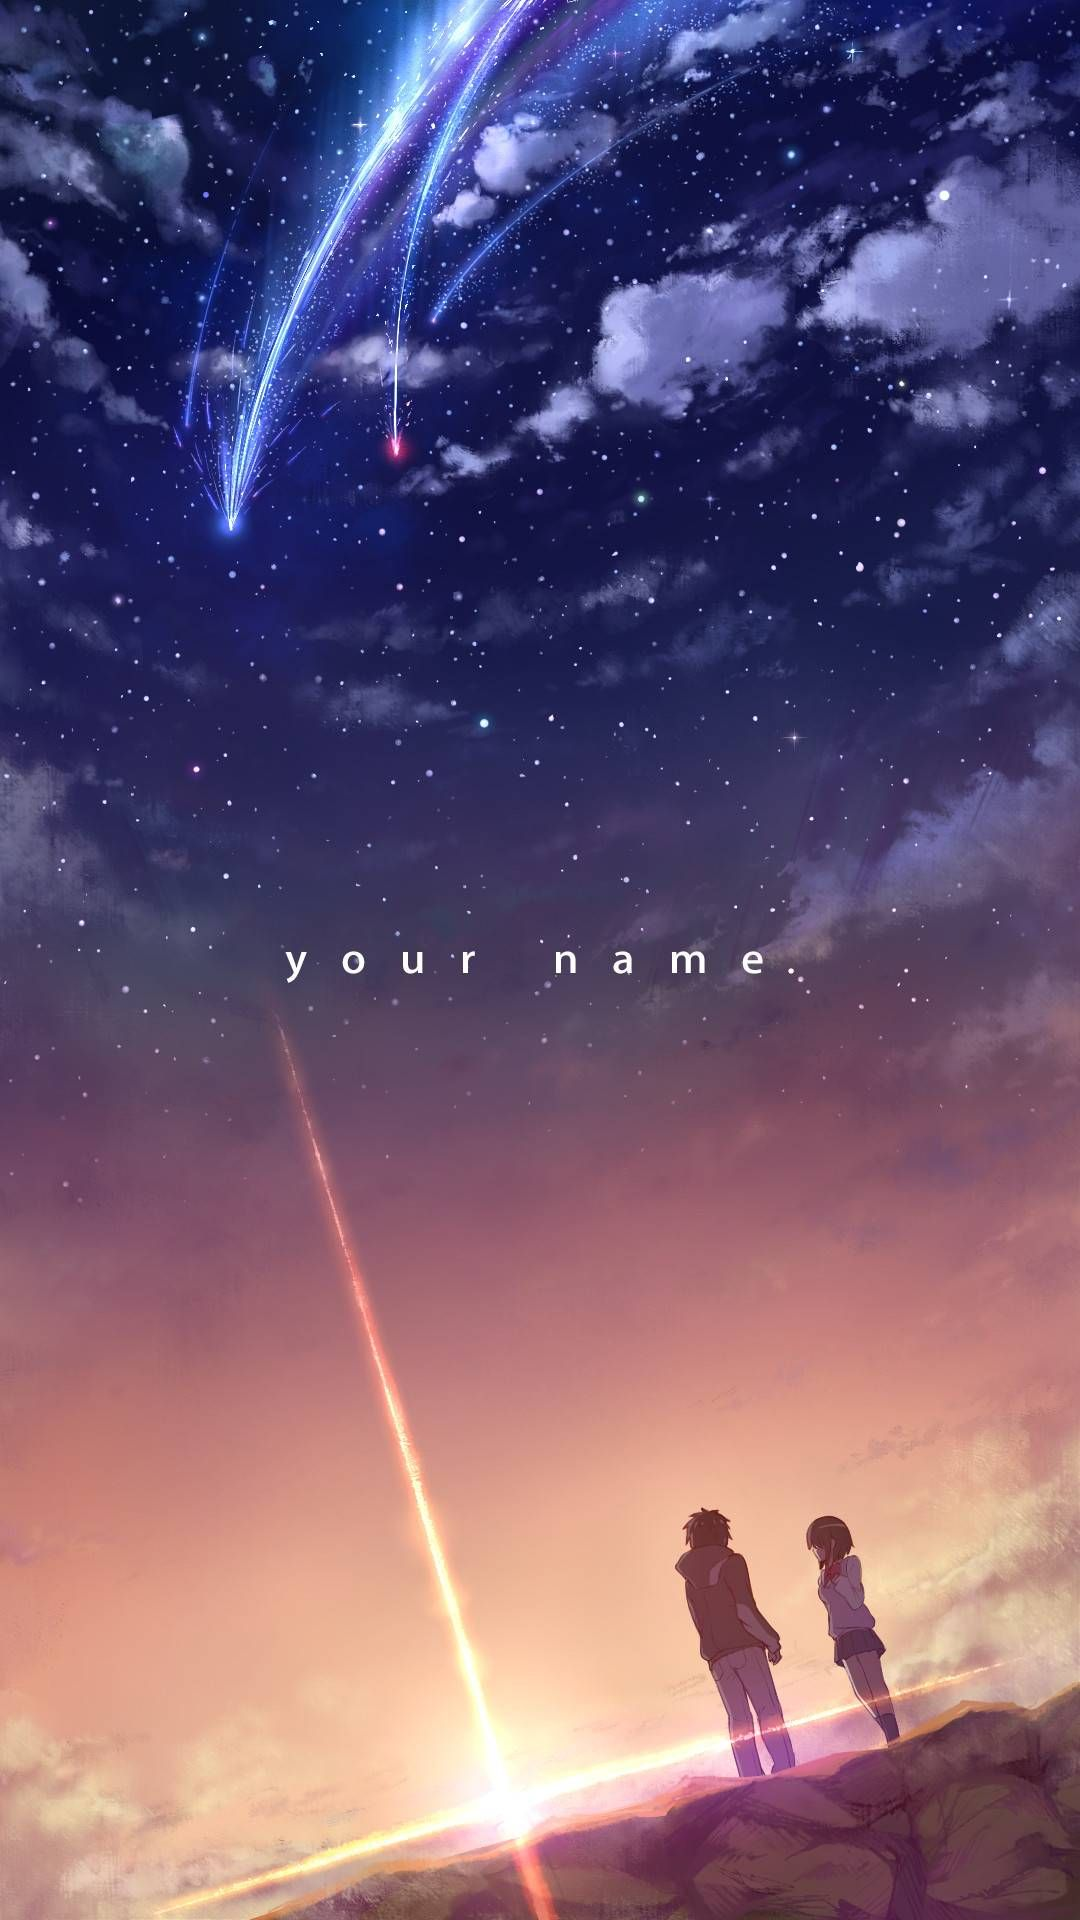 One Of The Posters Japanese Films Kimi No Na Wa  E  B E  Ae E  D E  Af Your Name Covers Characters Meteor Beautiful Cute Romantic Relationship Couple